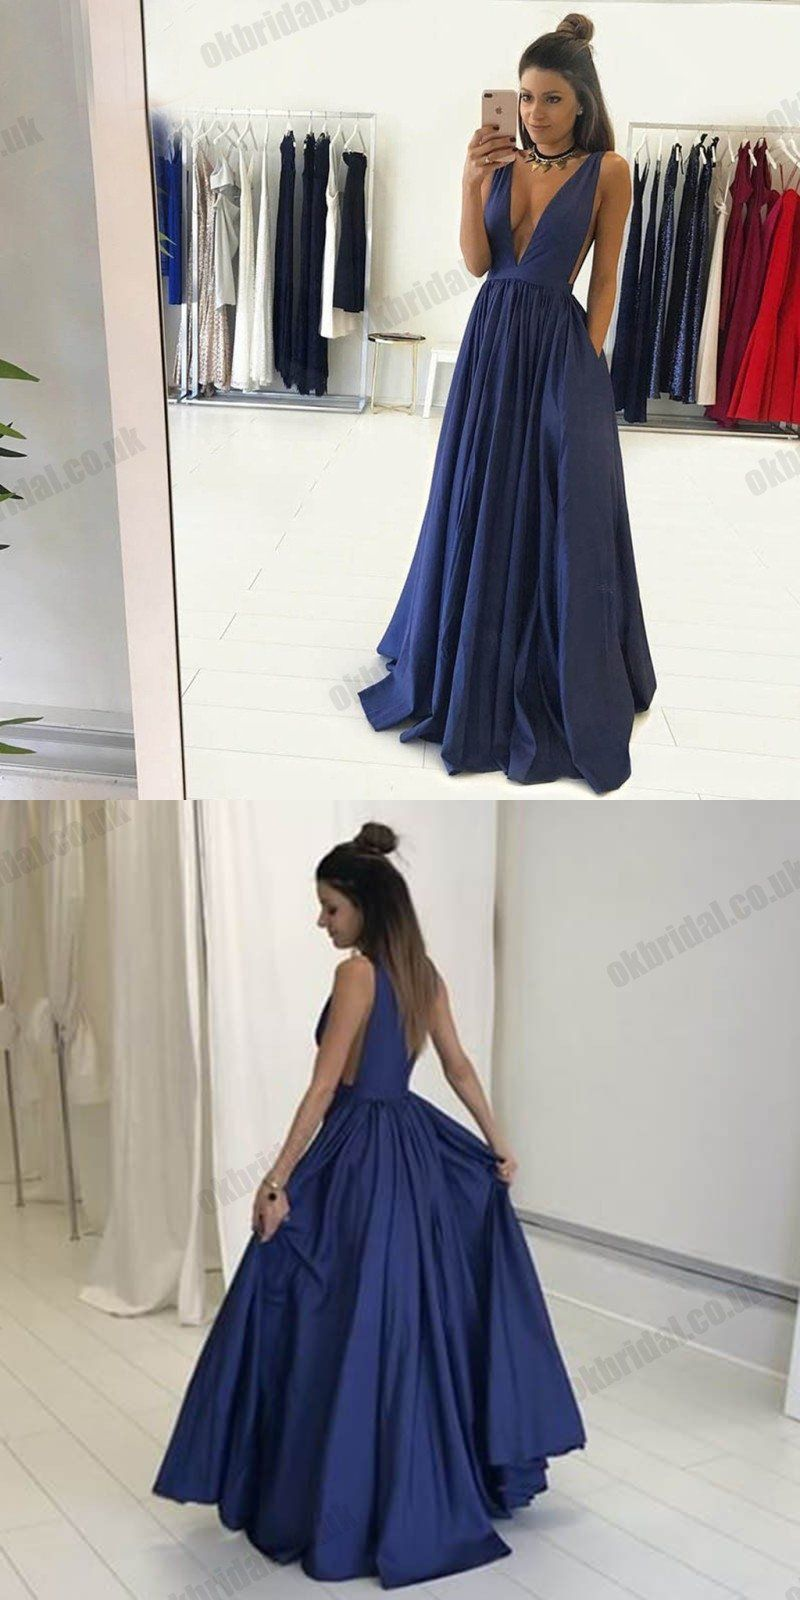 Charming deep vneck prom dresses sleeveless jersey aline backless